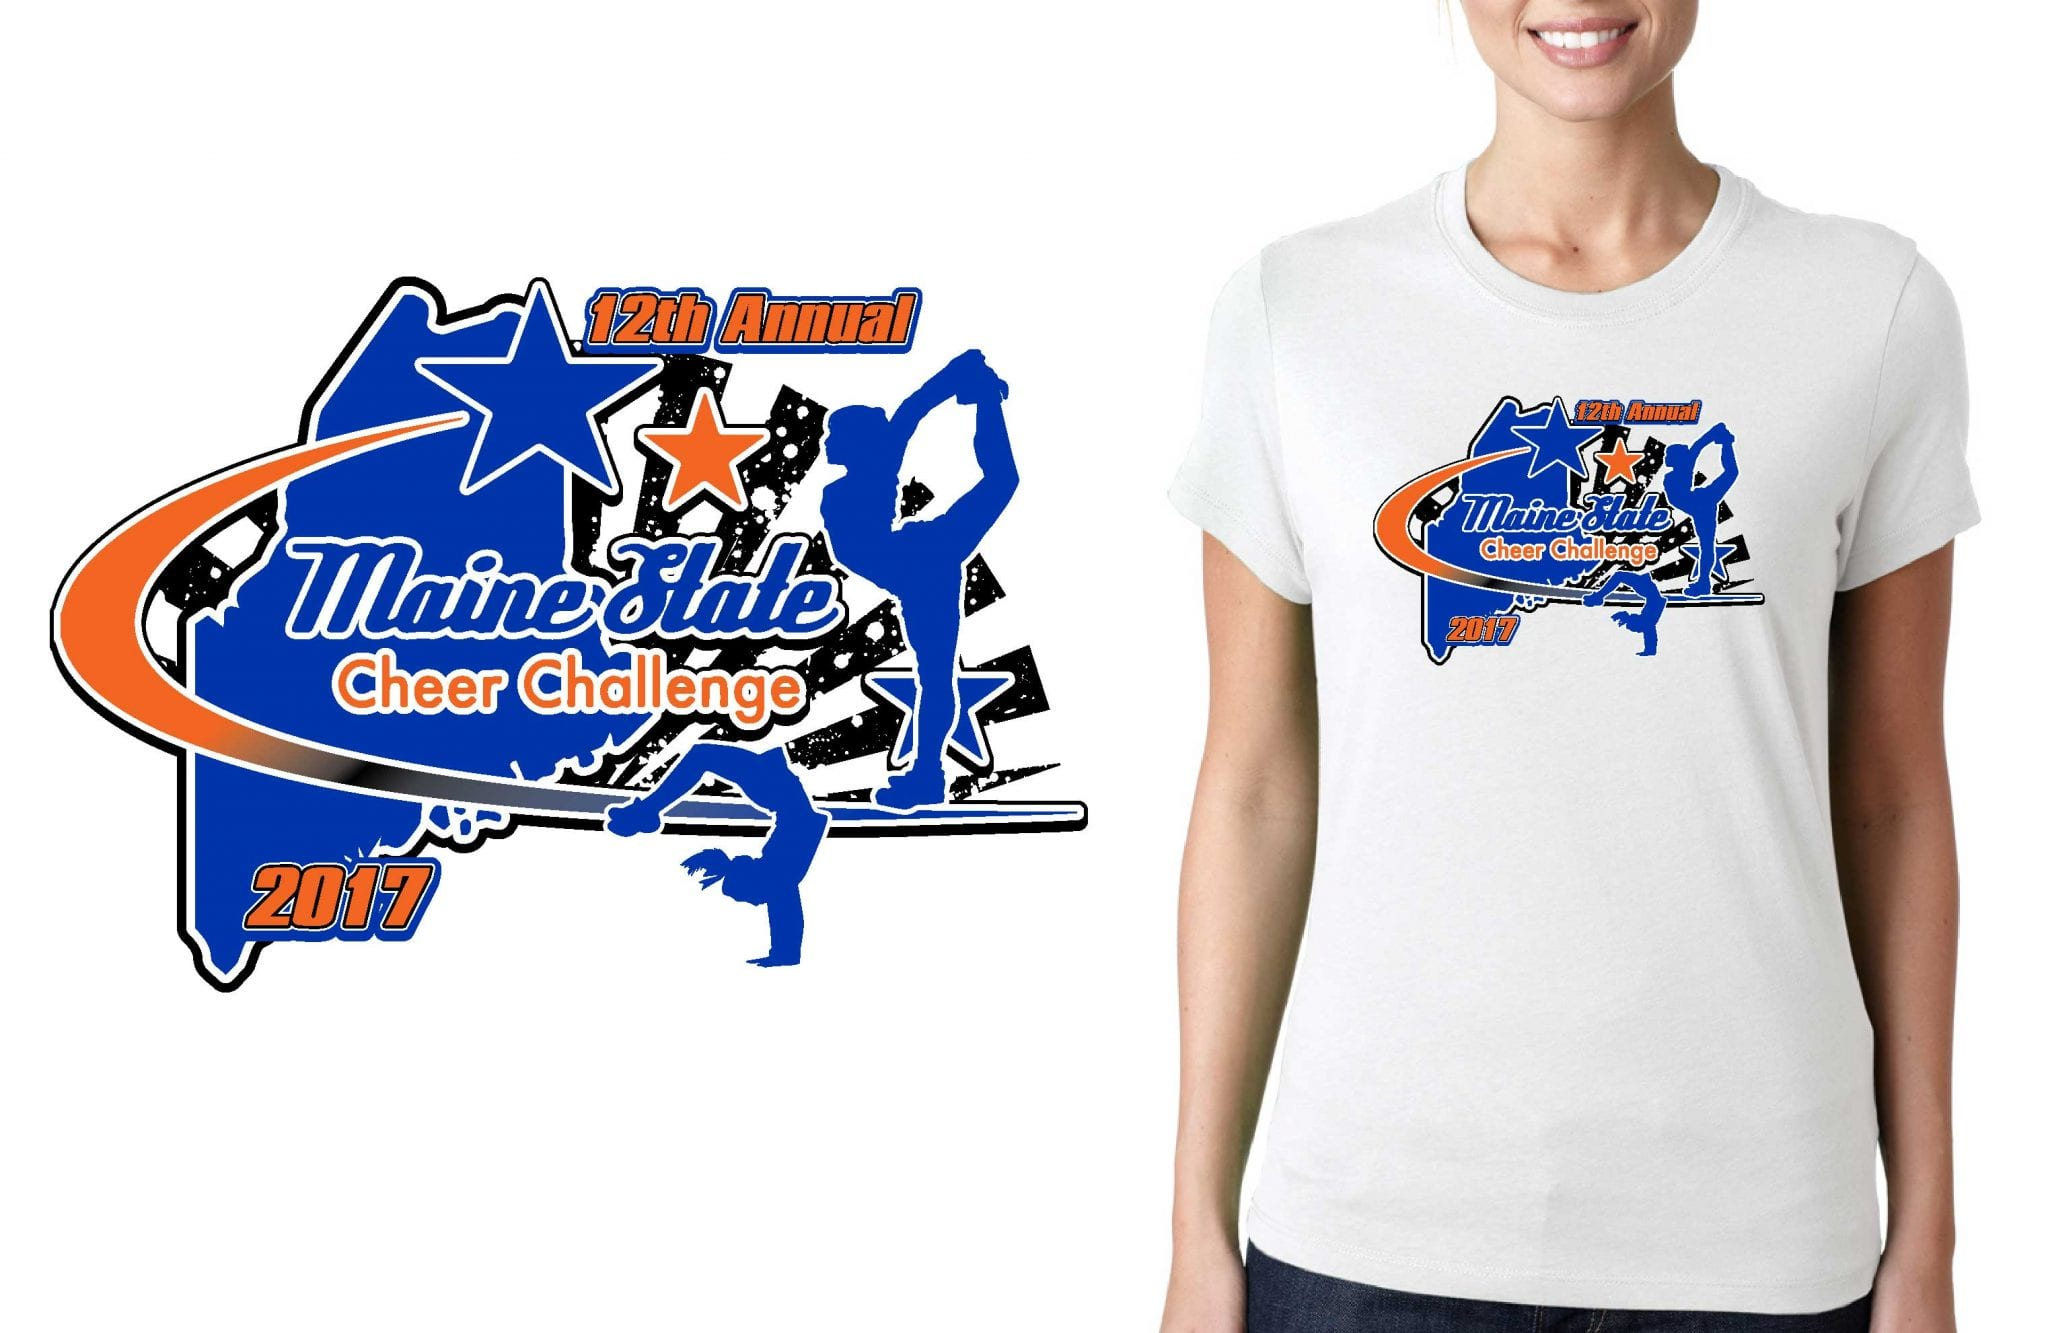 CHEER T SHIRT LOGO DESIGN 12th-Annual-Maine-State-Cheer-Challenge BY UrArtStudio